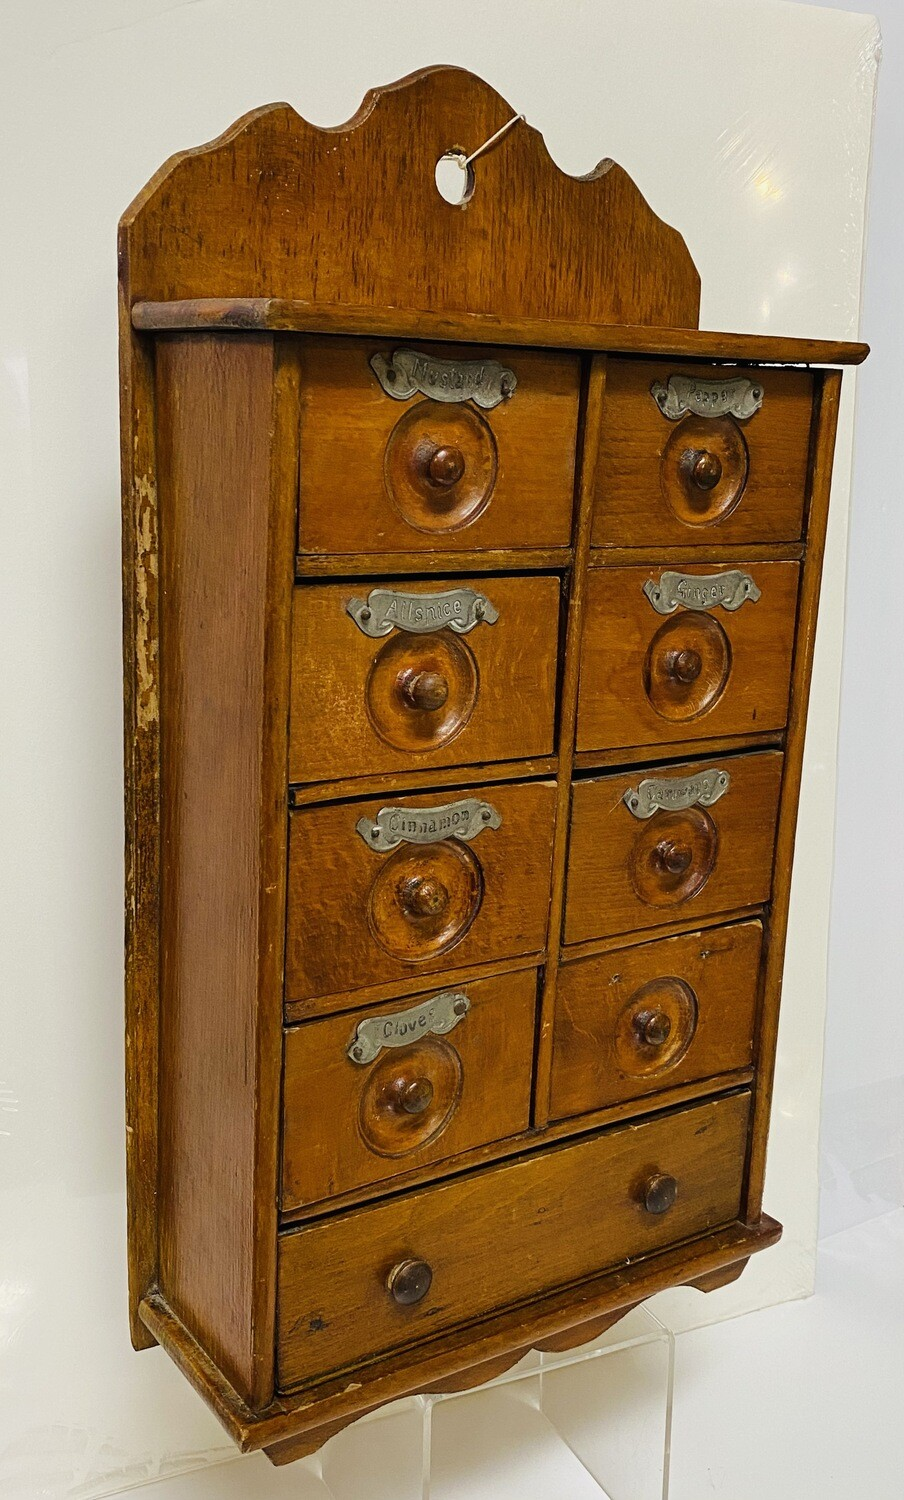 9 Drawer Spice Cabinet with Tin Name Plates